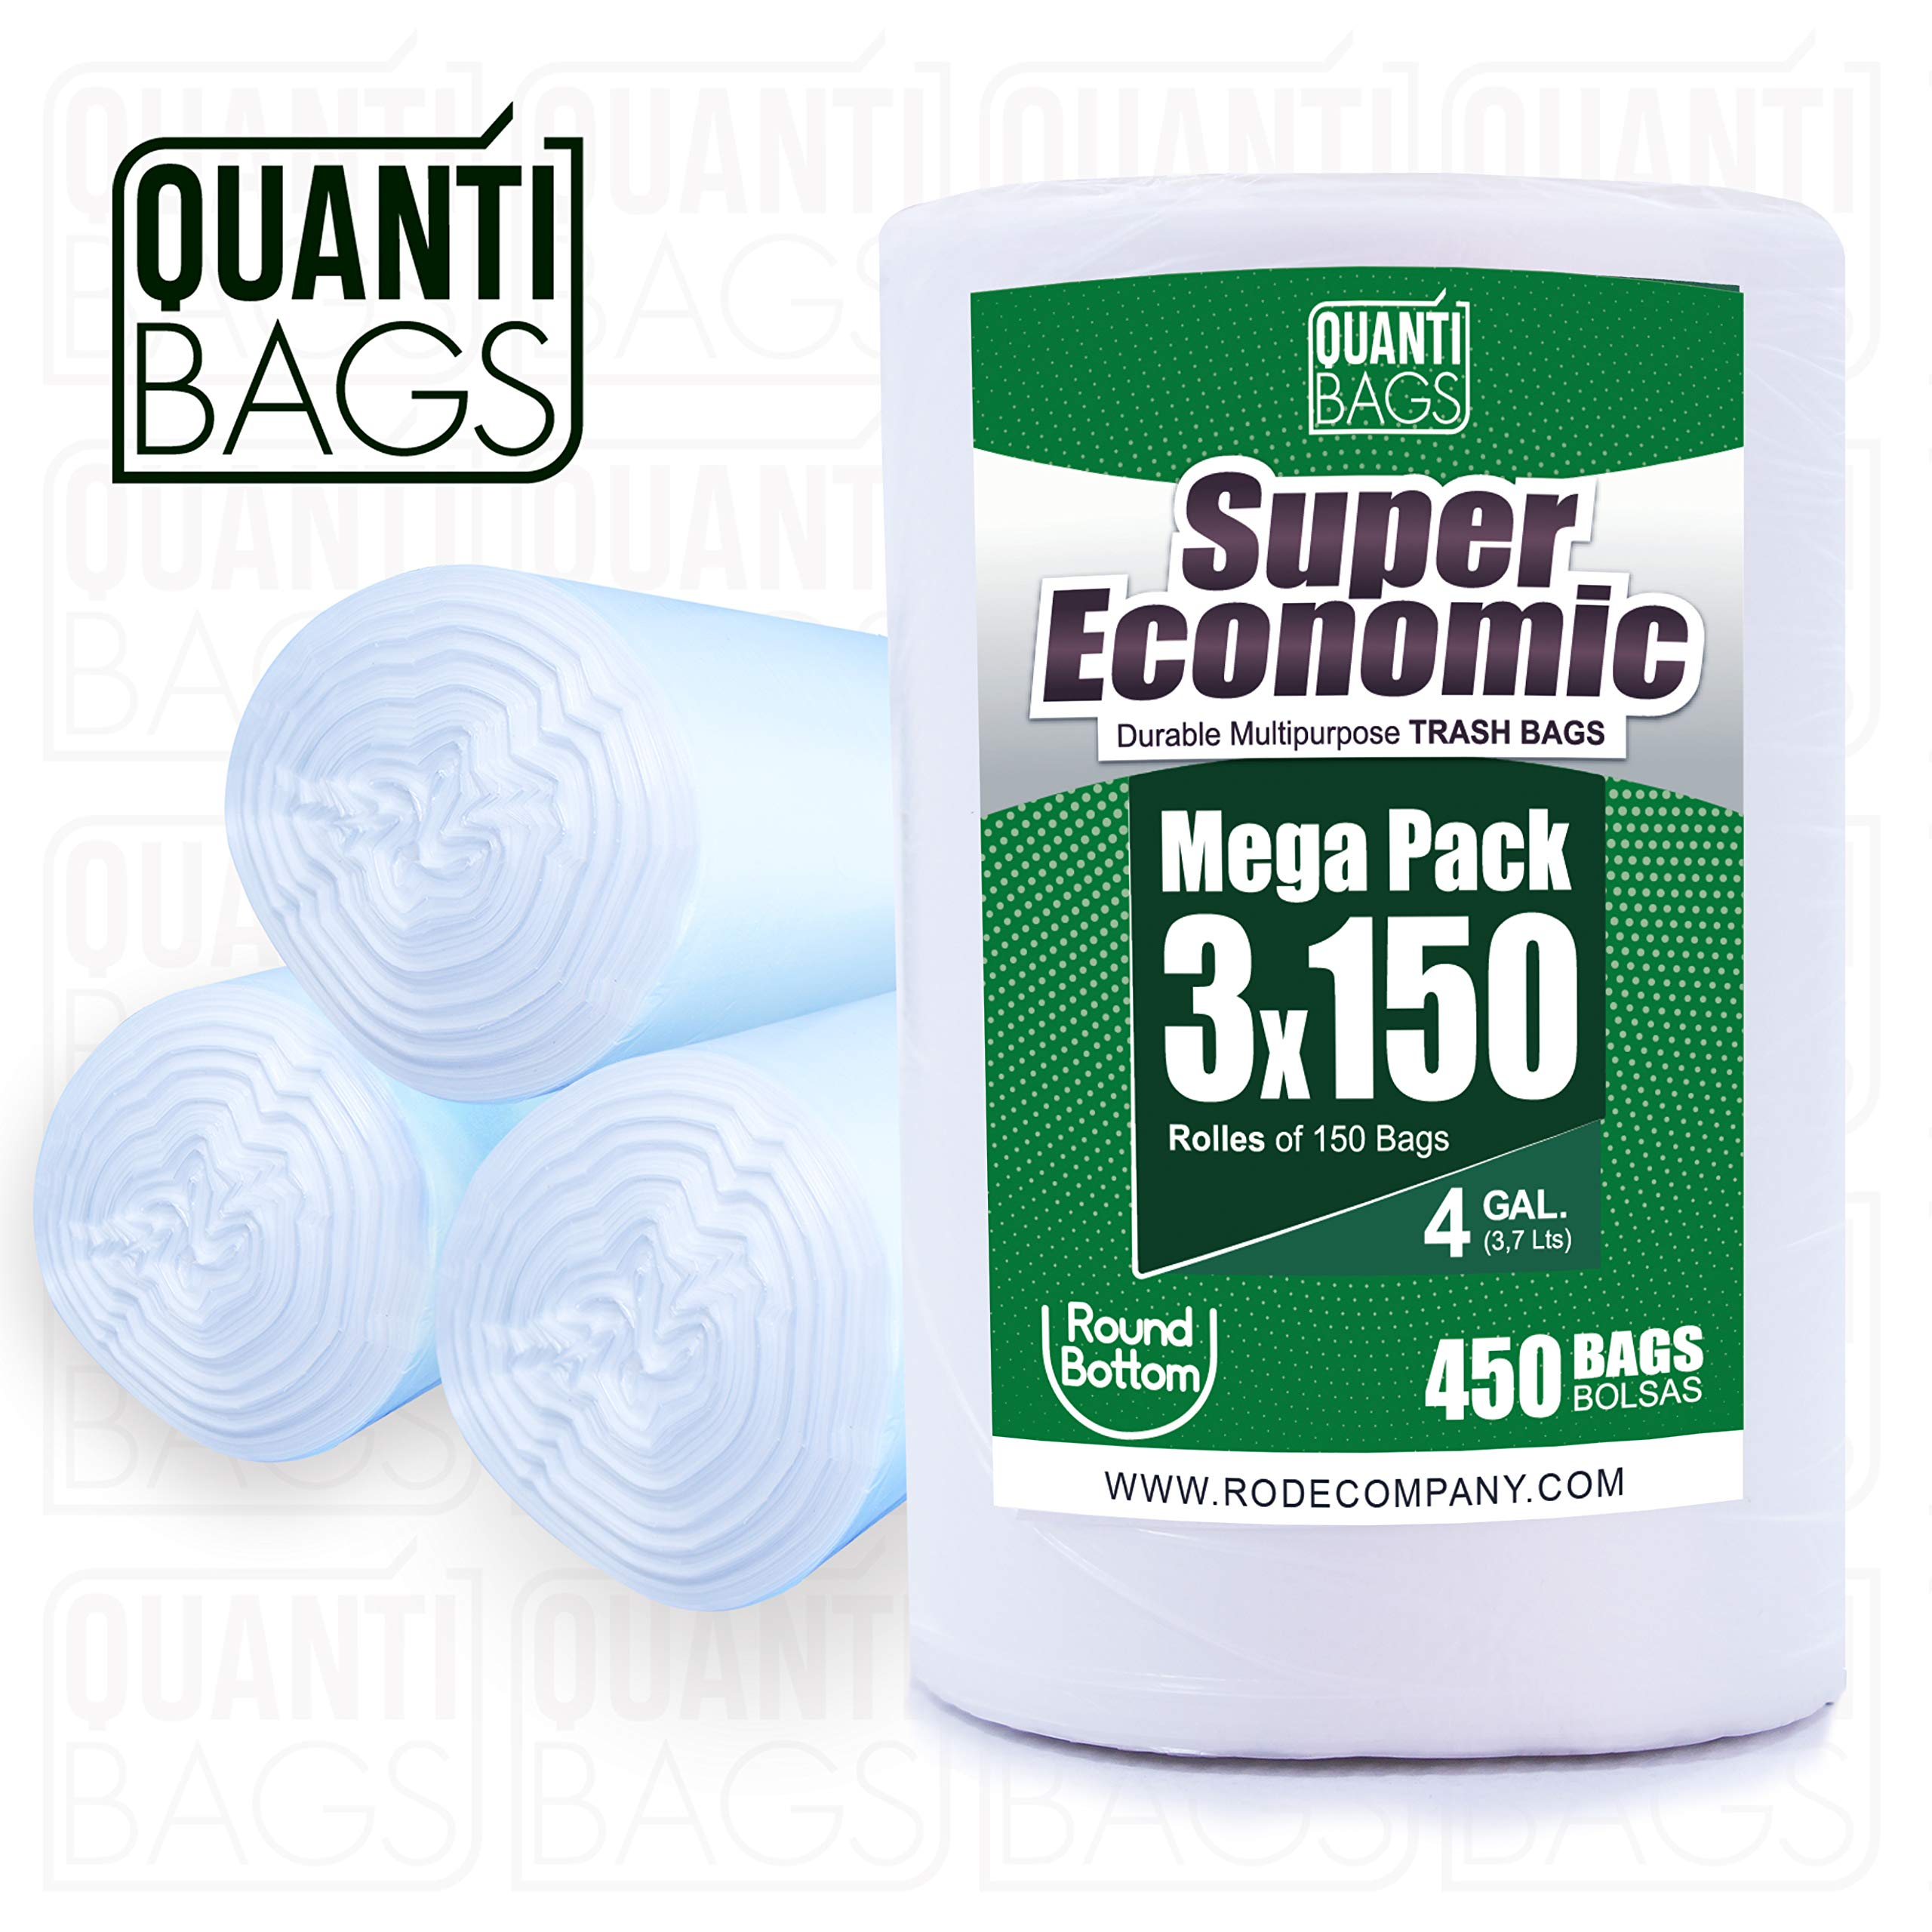 QuantiBags Trash Bags - Wastebasket Liner Bags - For Kitchen & Bathroom Bins - Gallon Capacity - Strong & Resistant Material - Extra Large 150 Count x 3 Rolls - Round Bottom Design